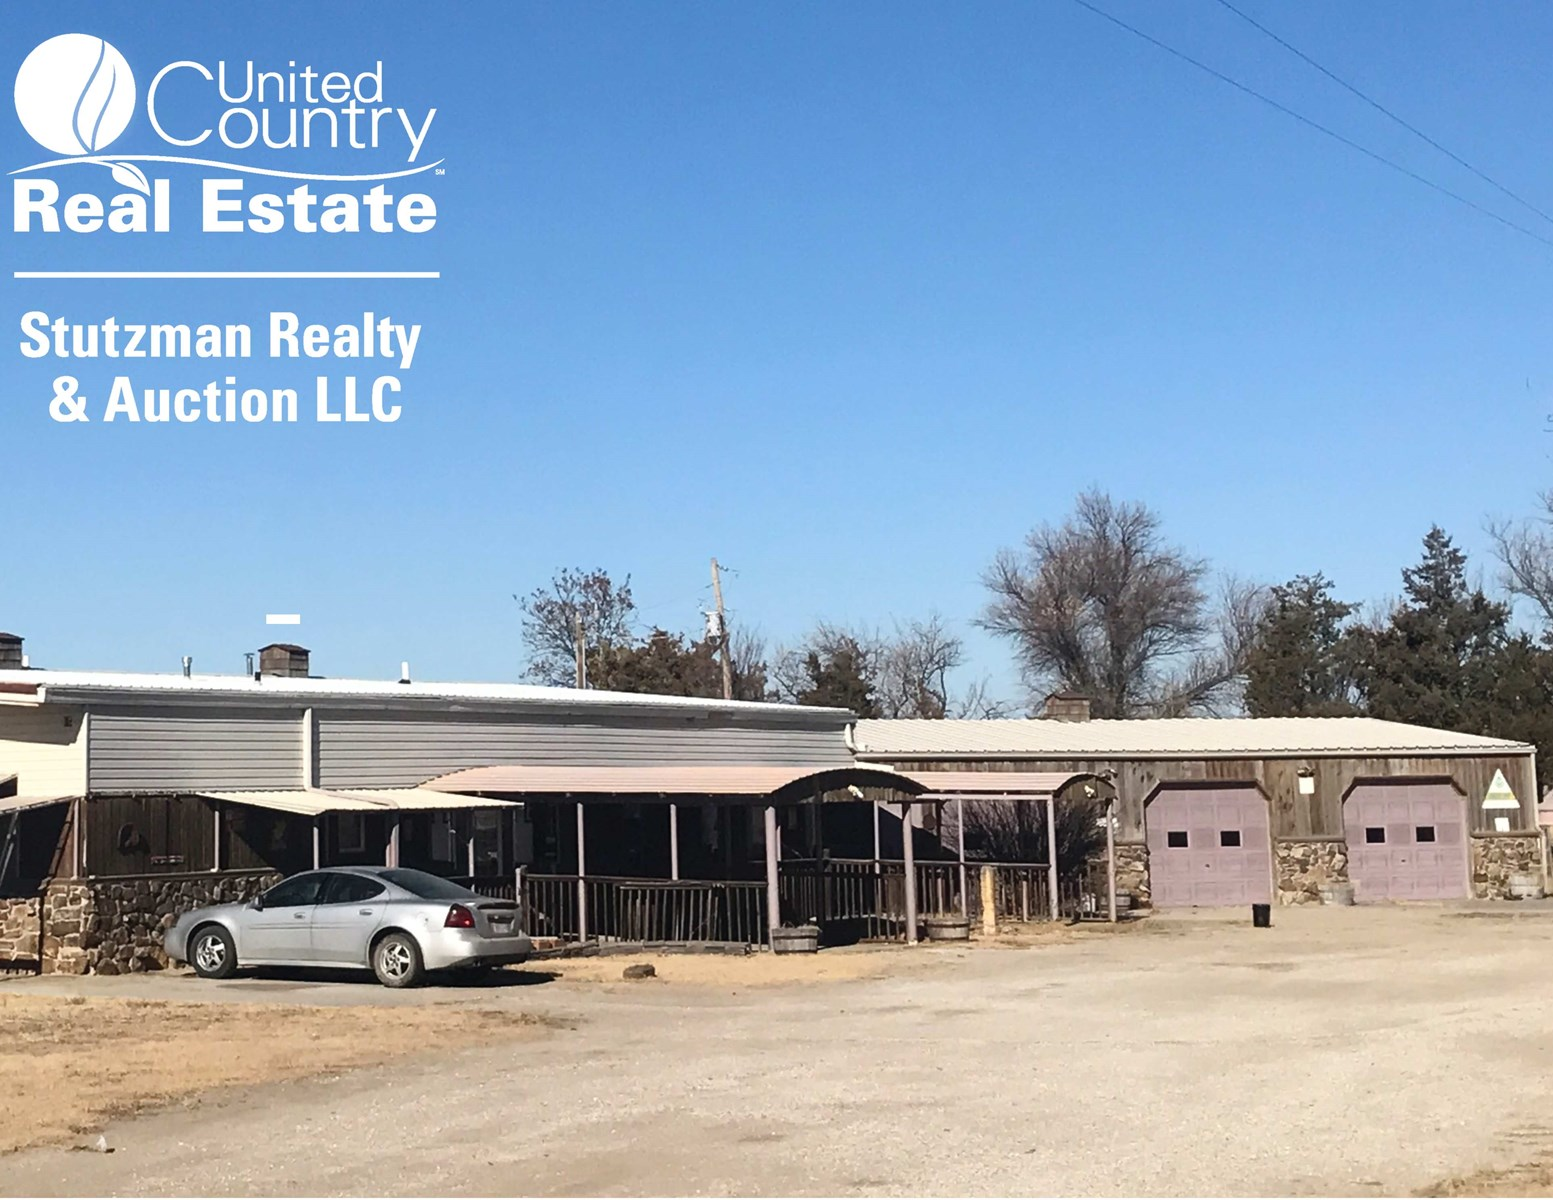 INCOME-PRODUCING PROPERTY FOR SALE IN ULYSSES, KS